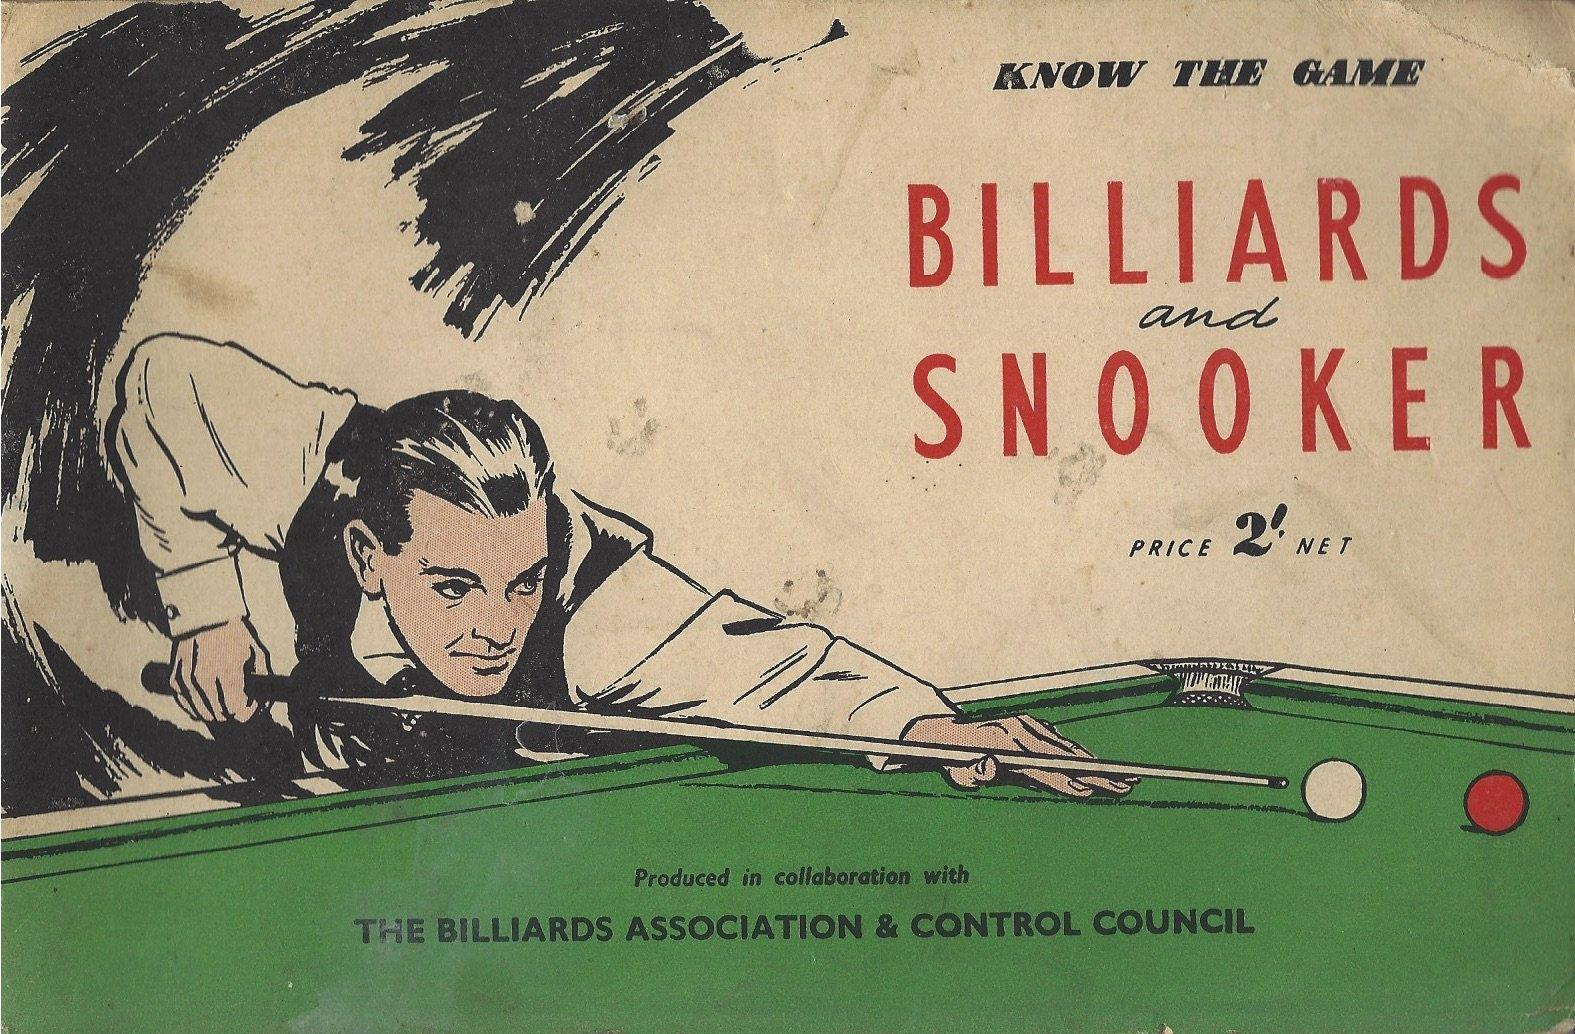 know-the-game-billiards-snooker-1968.jpg